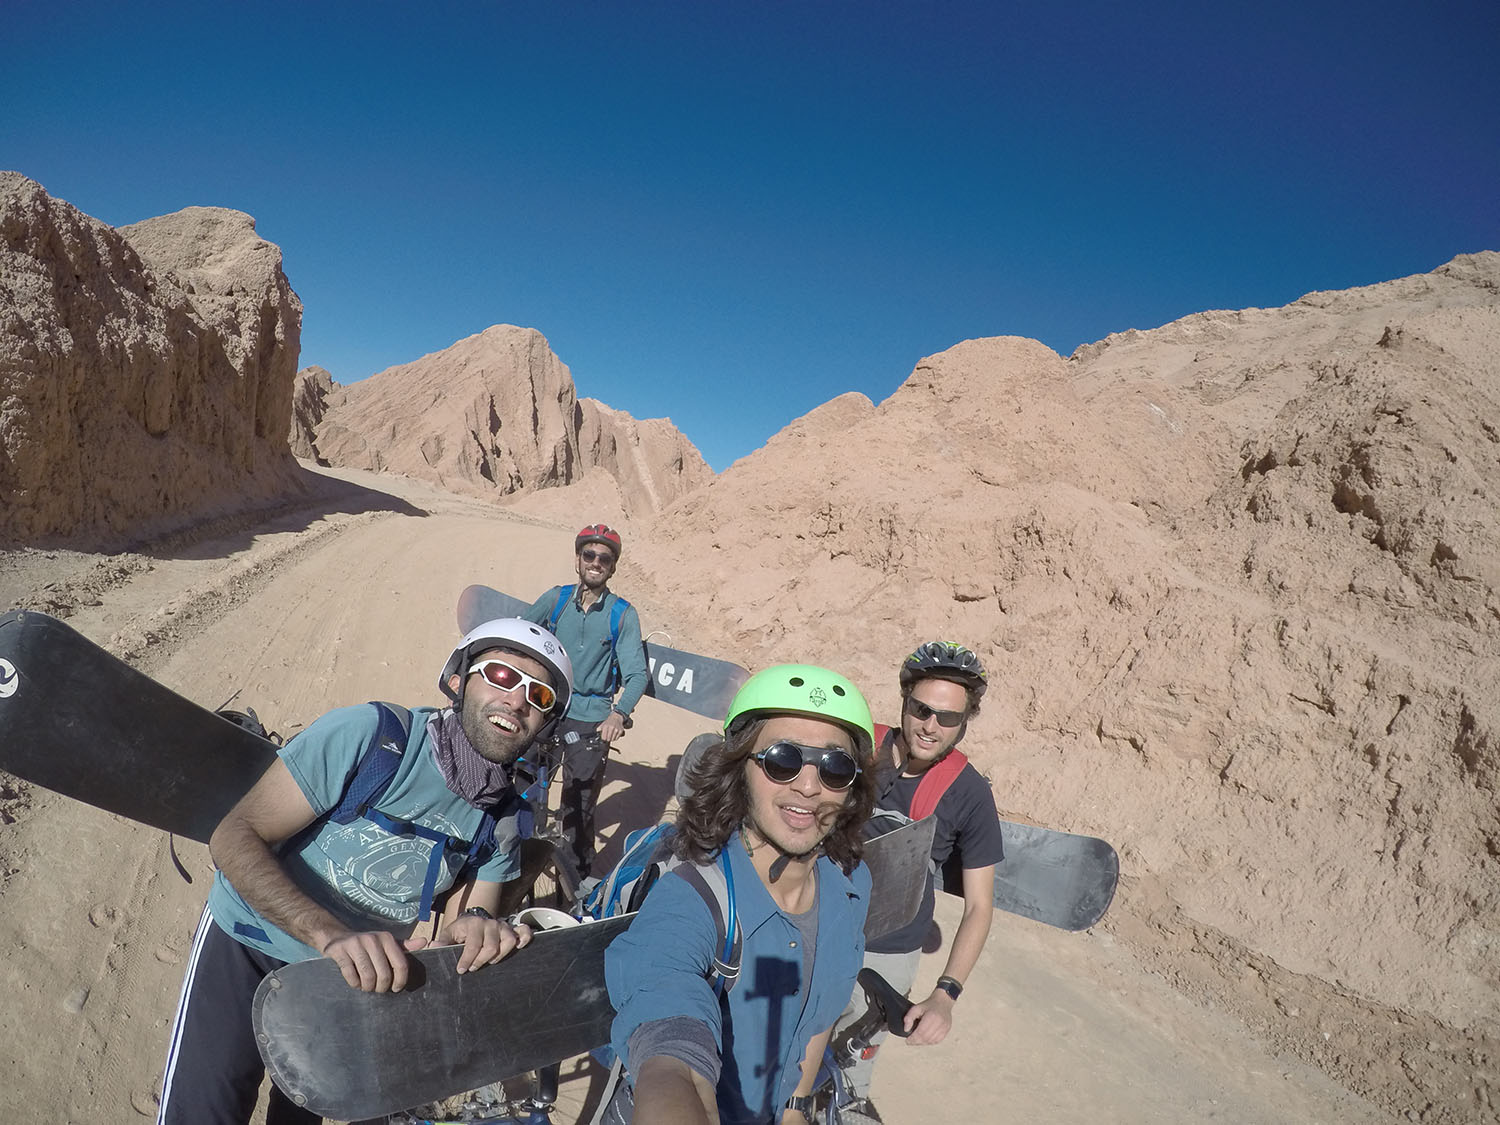 Sandboarding in the Atacama.